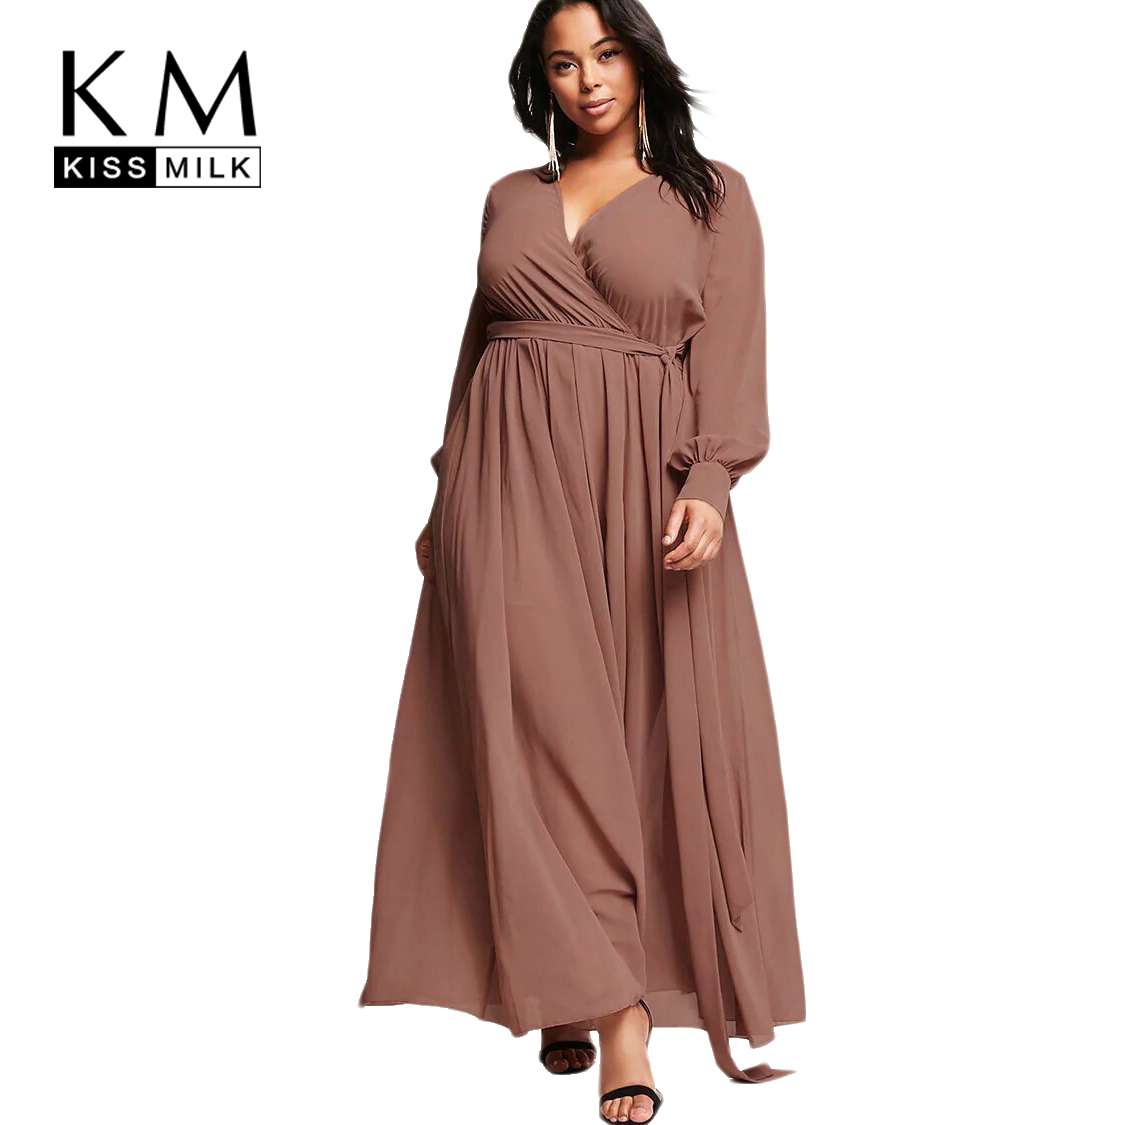 kissmilk 2017Plus Size Solid Women Long Dresses Lace Up V-neck Long Sleeve Female Clothing Elegant Big Size Sexy Lady Dress